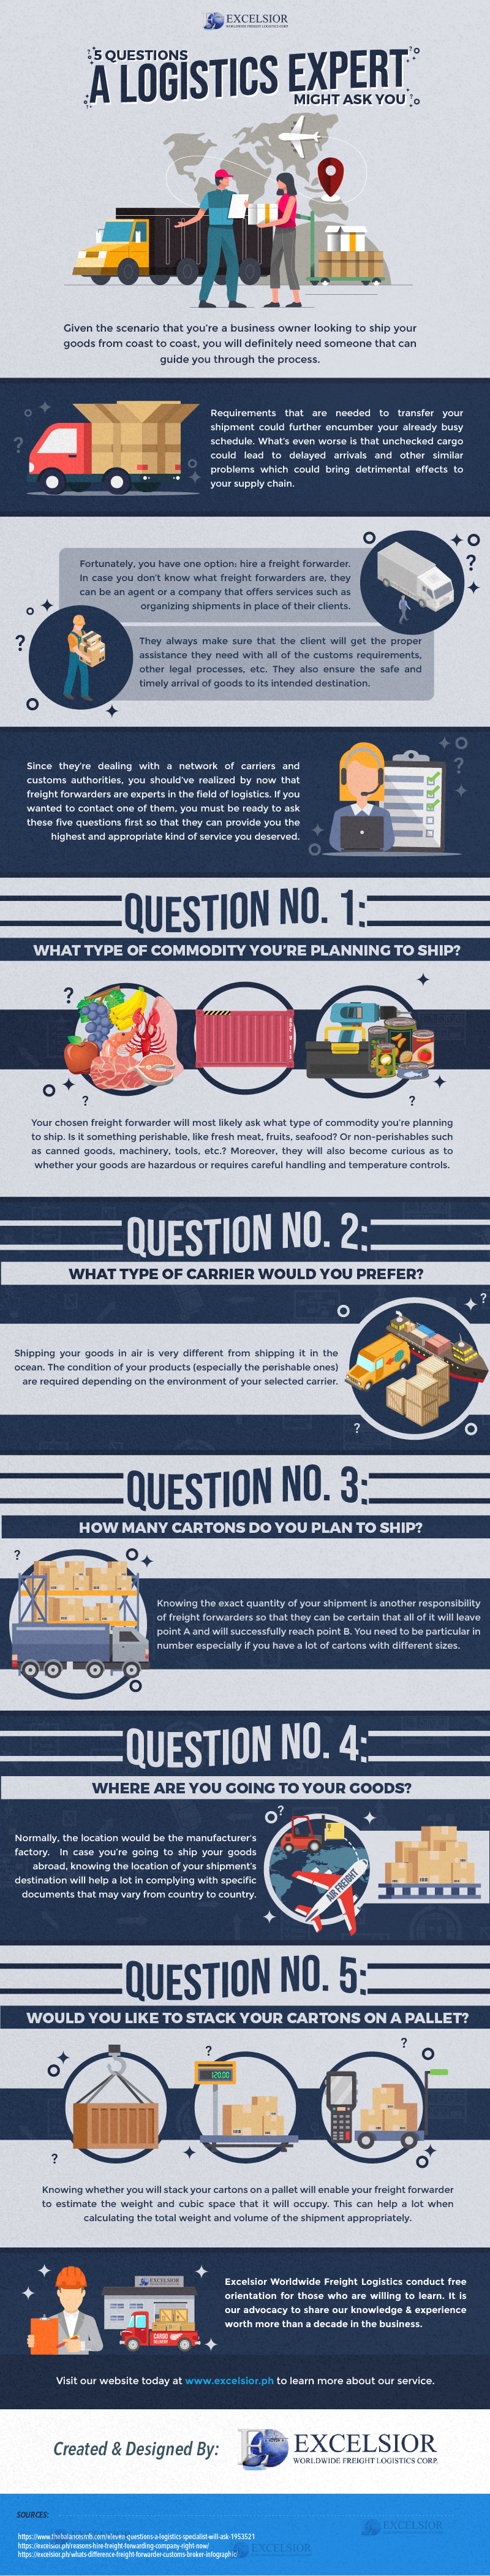 5 Questions a Logistics Expert Might Ask You - Infographic